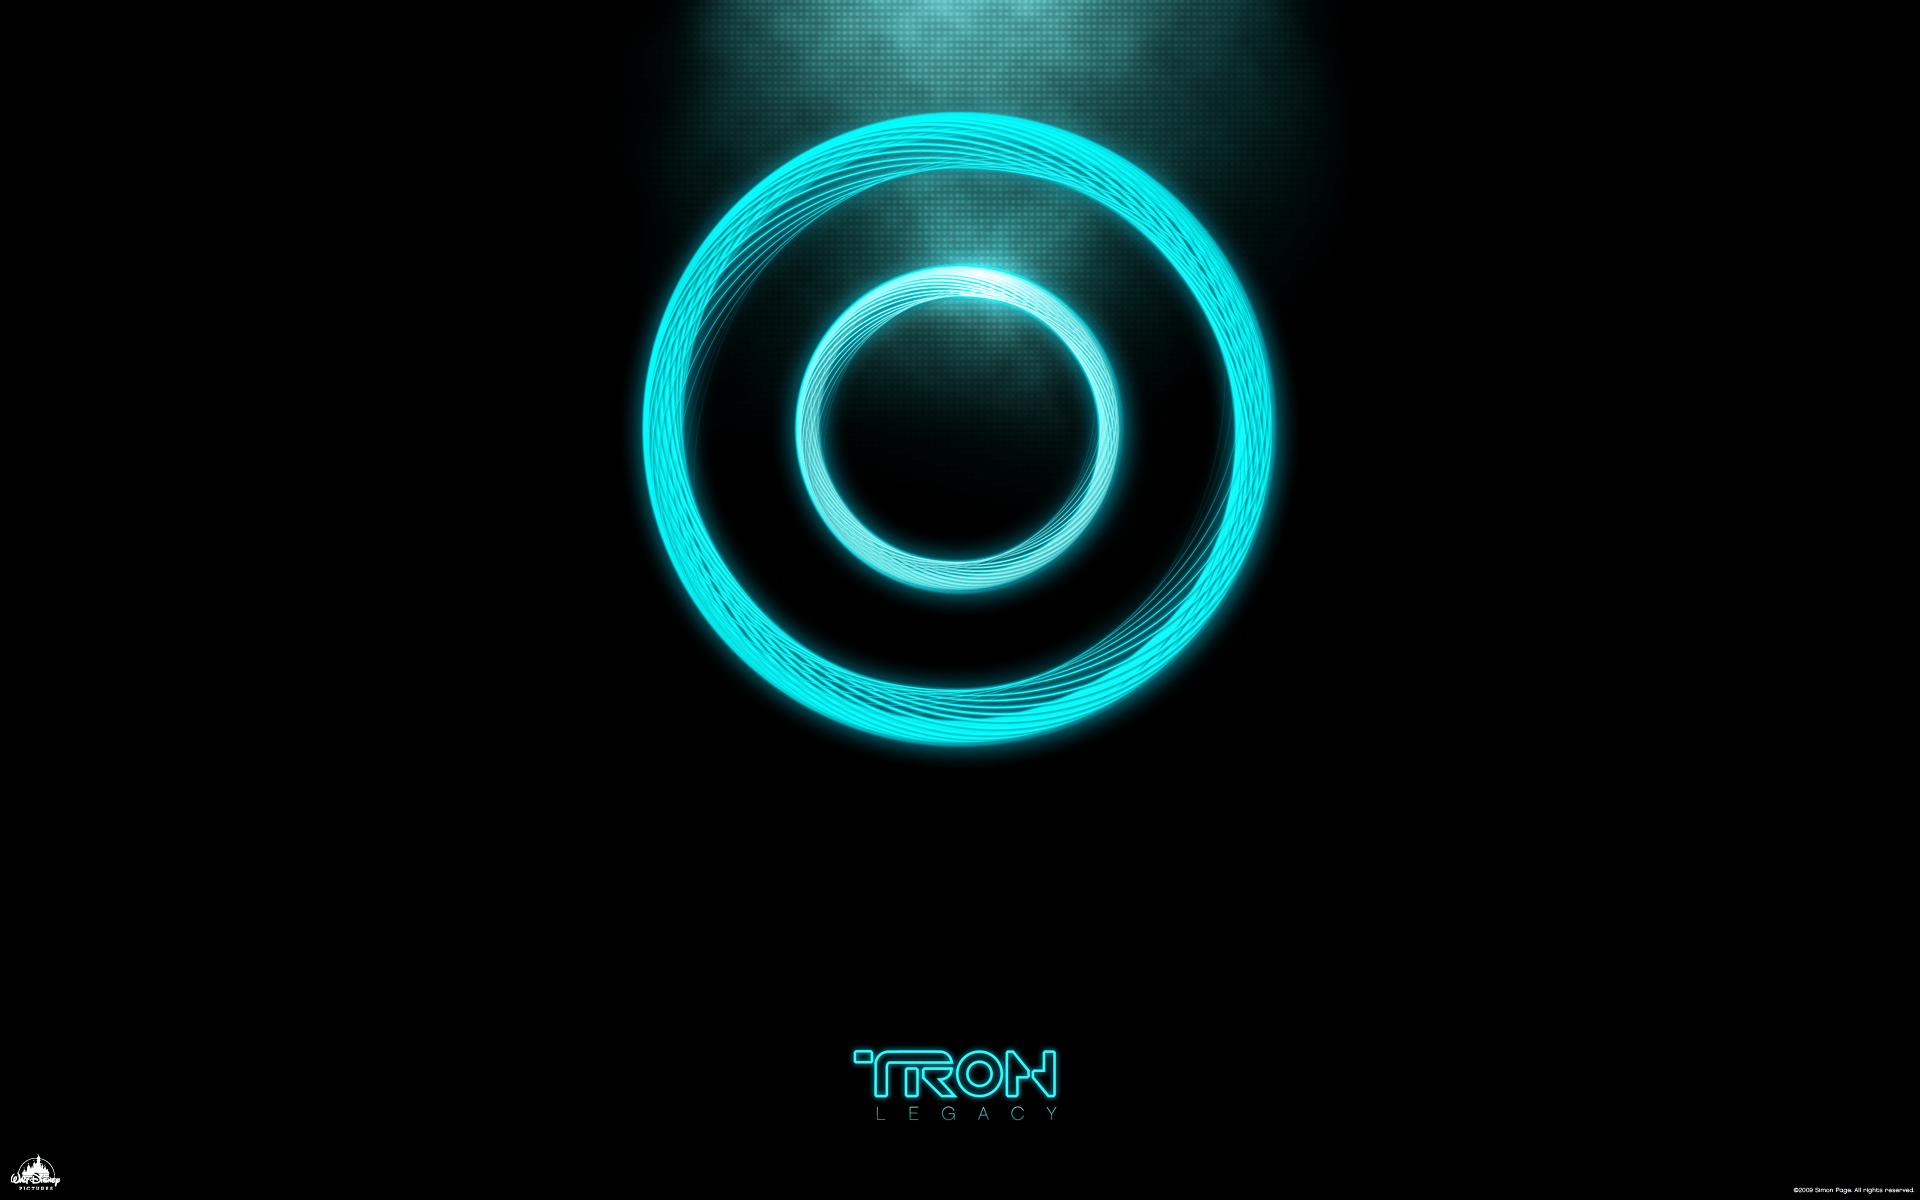 awesome tronlegacy wallpapers - photo #11